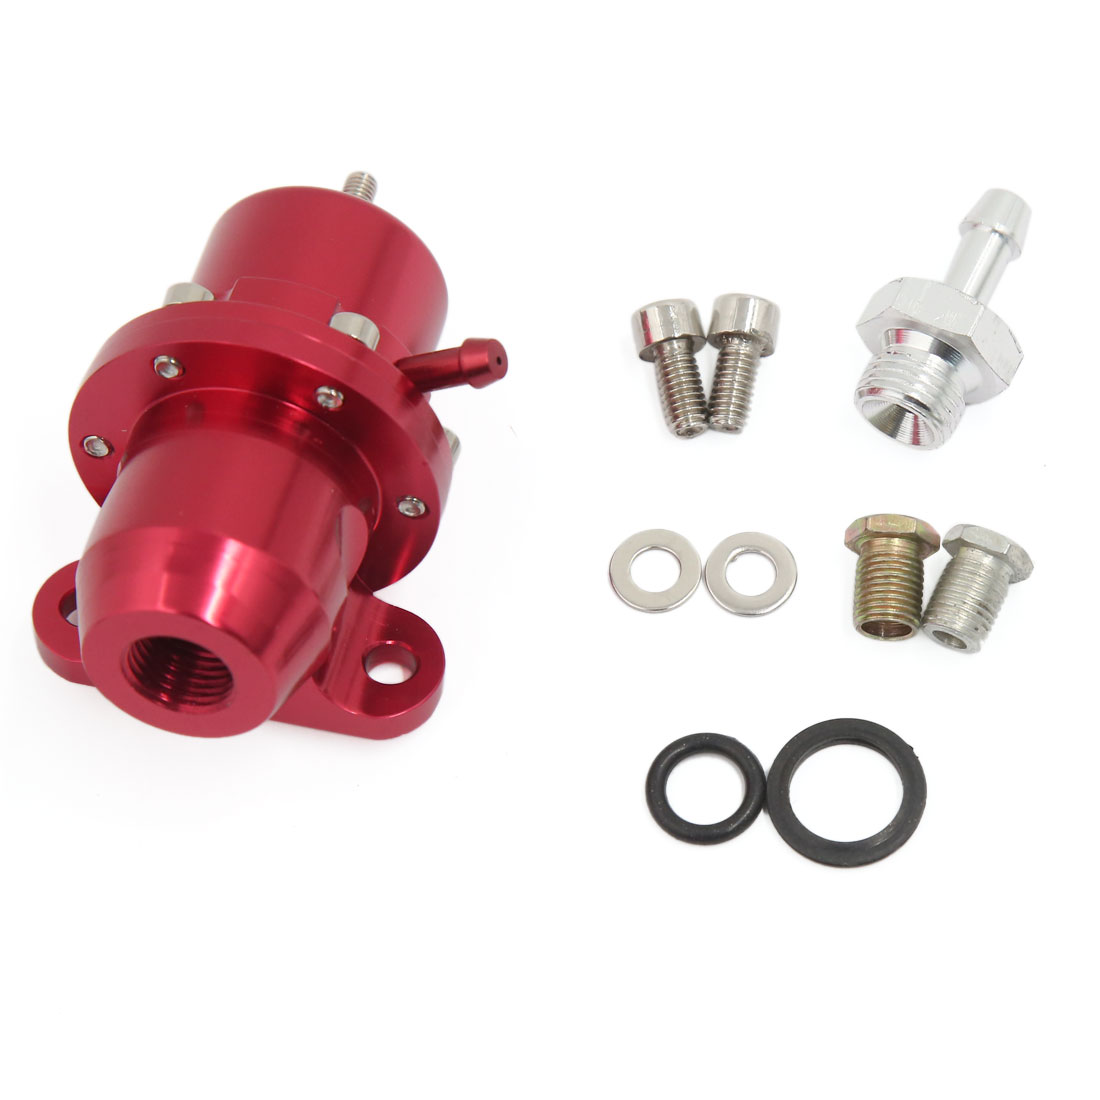 Universal Straight Metal 1:1 Ratio Bolt On Fuel Pressure Regulator Red for Car